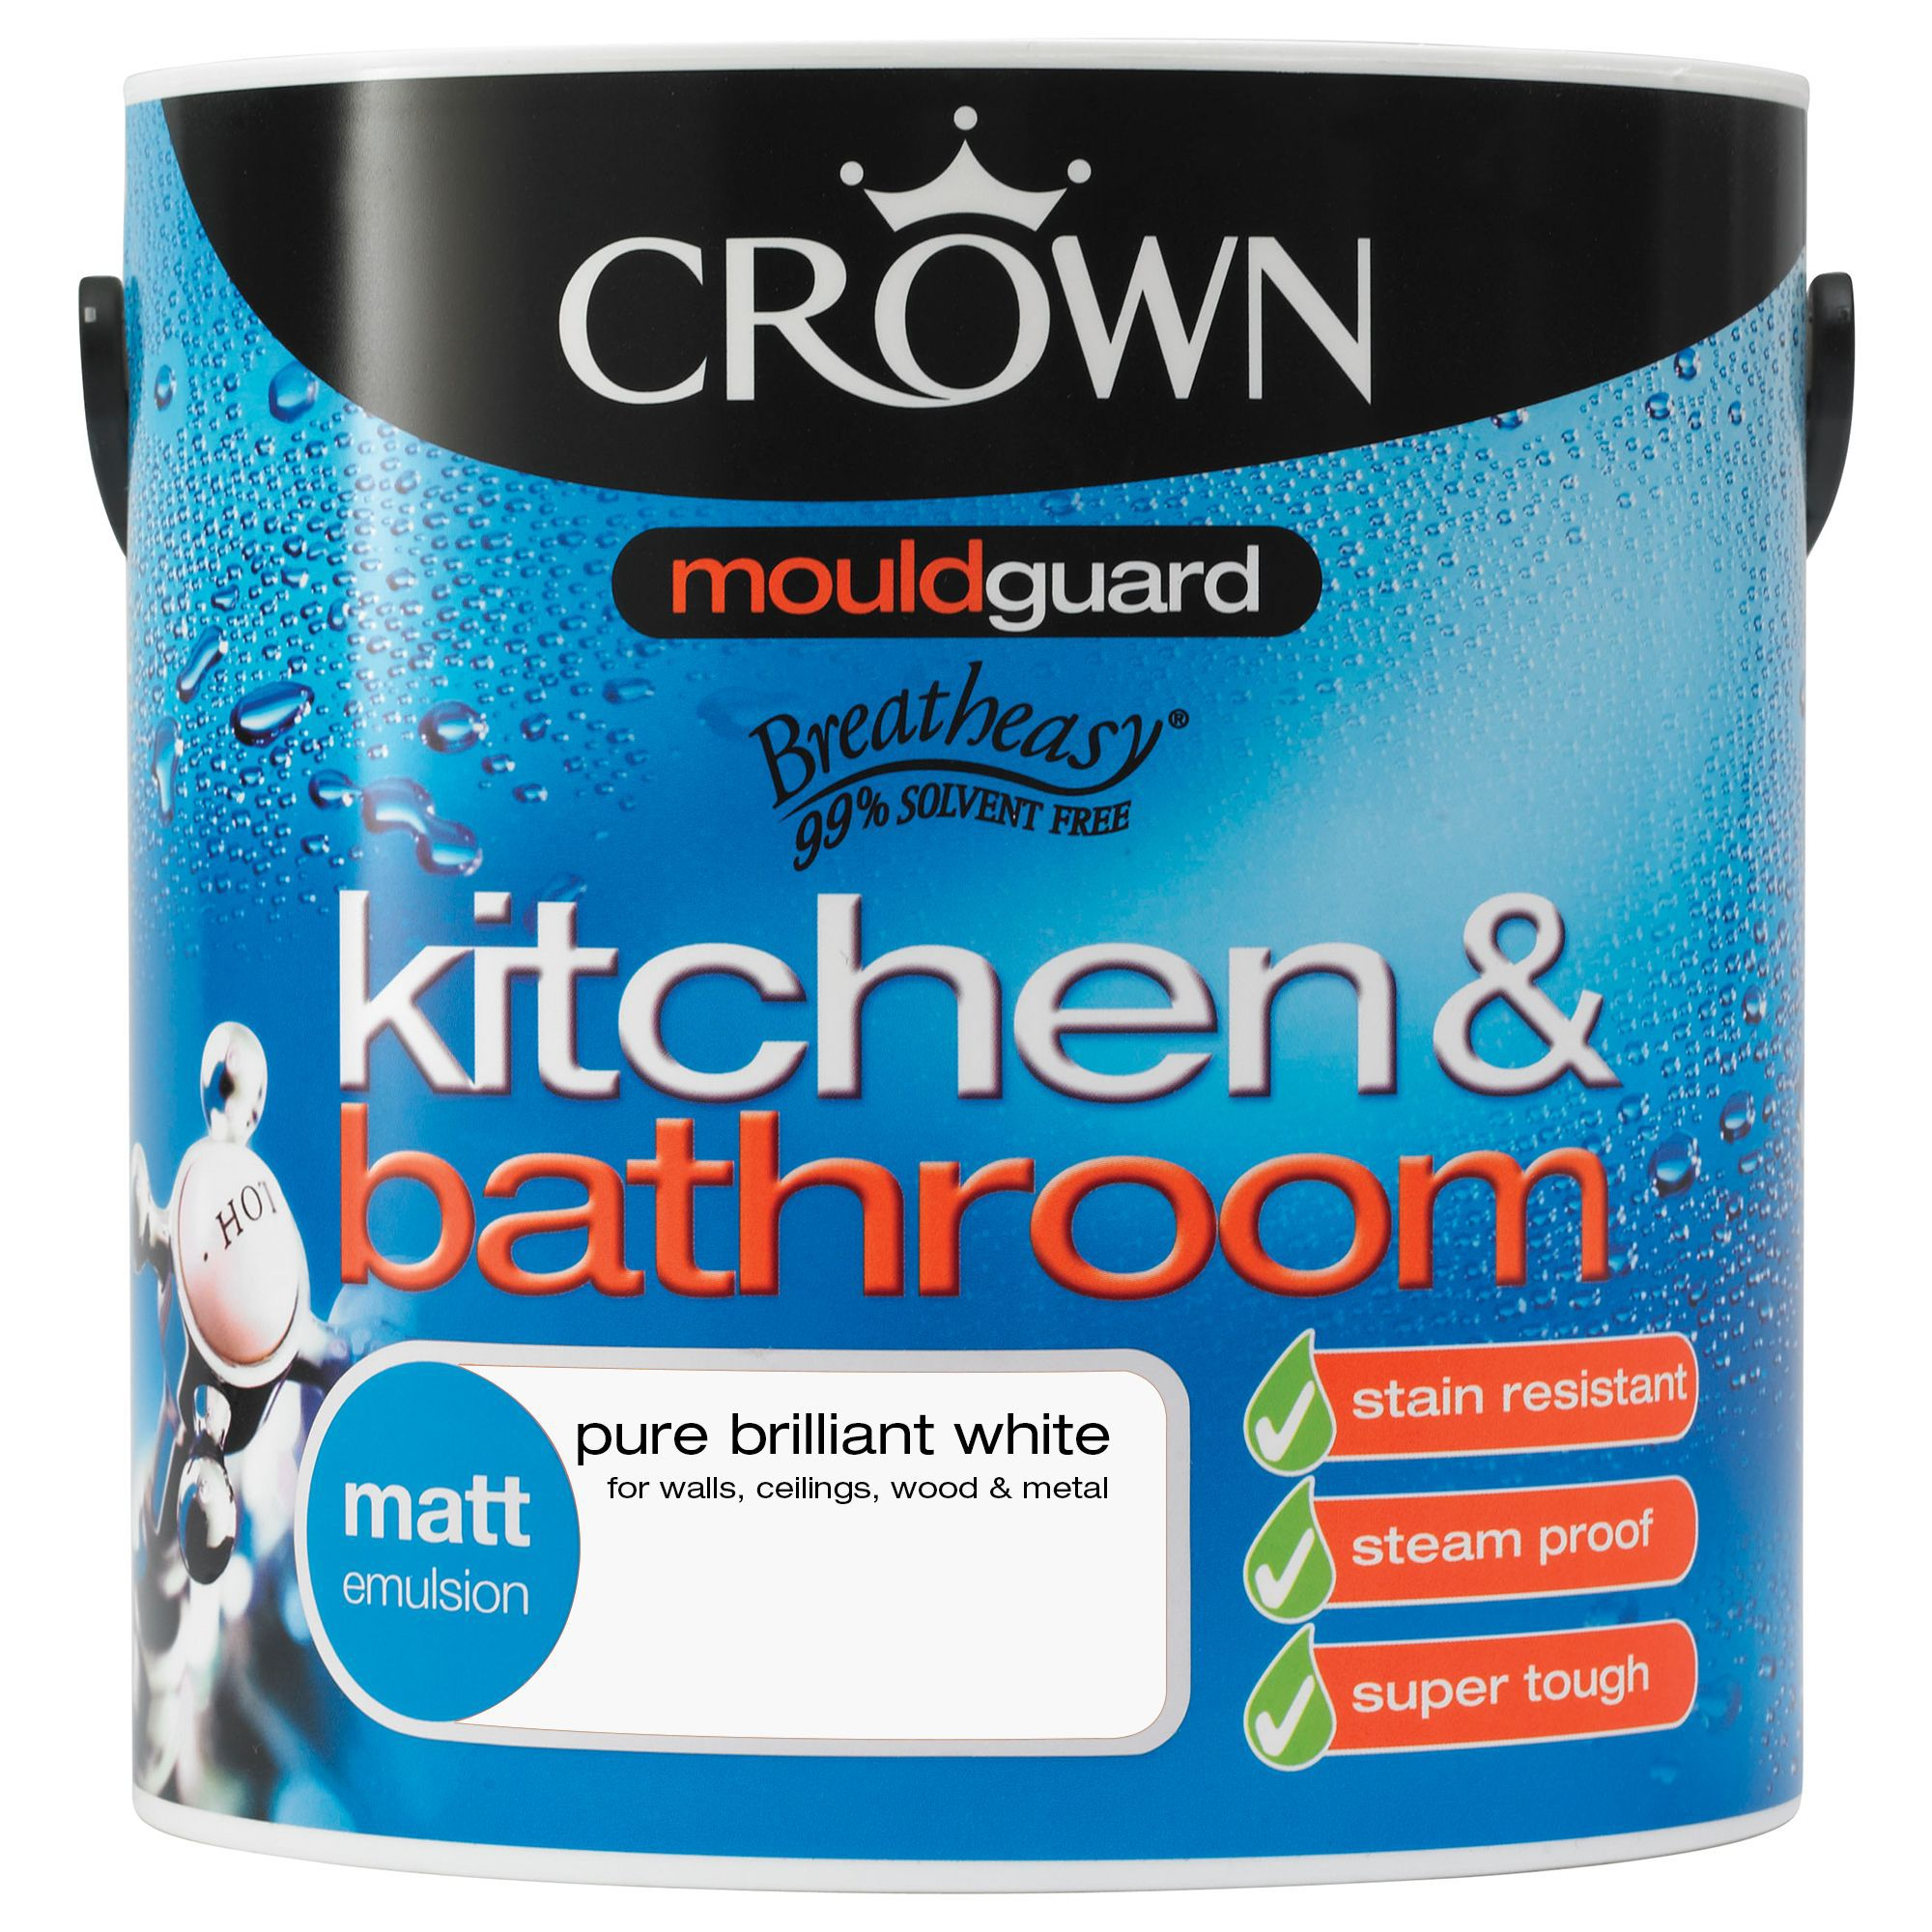 Bathroom Paint Matt: Crown Kitchen & Bathroom Pure Brilliant White Matt